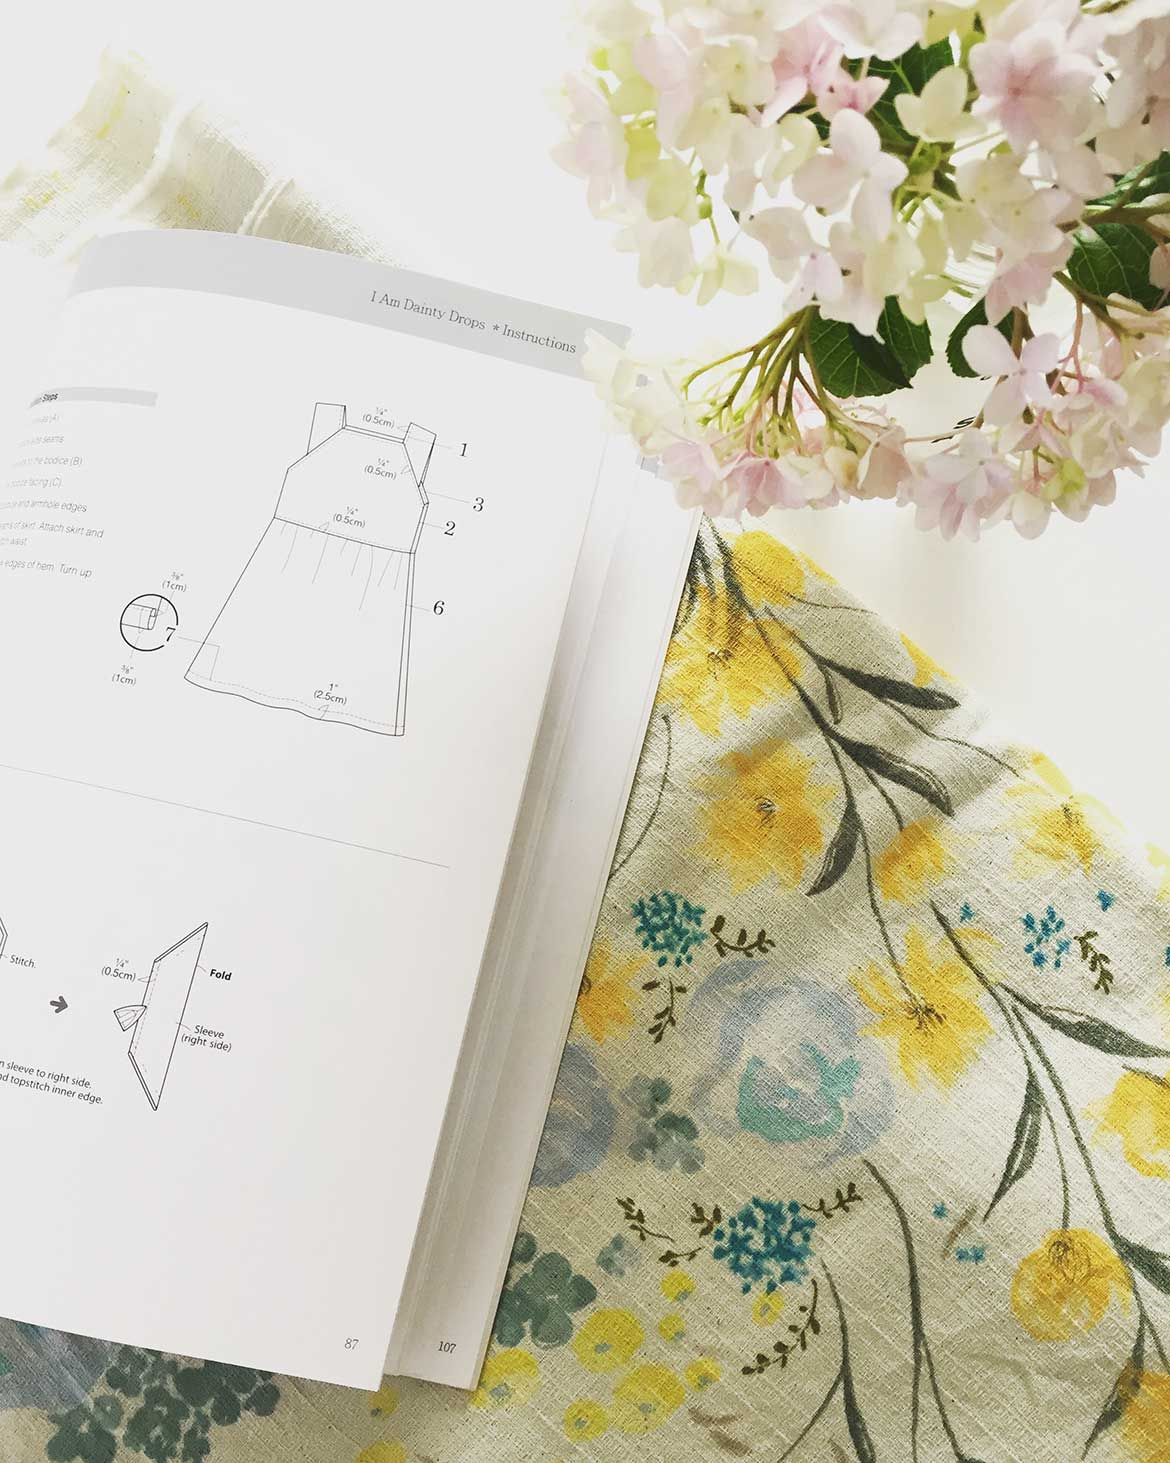 Japanese sewing pattern for a drop waist dress. I'll be making this with Nani-iro linen fabric in yellow and blue floral.